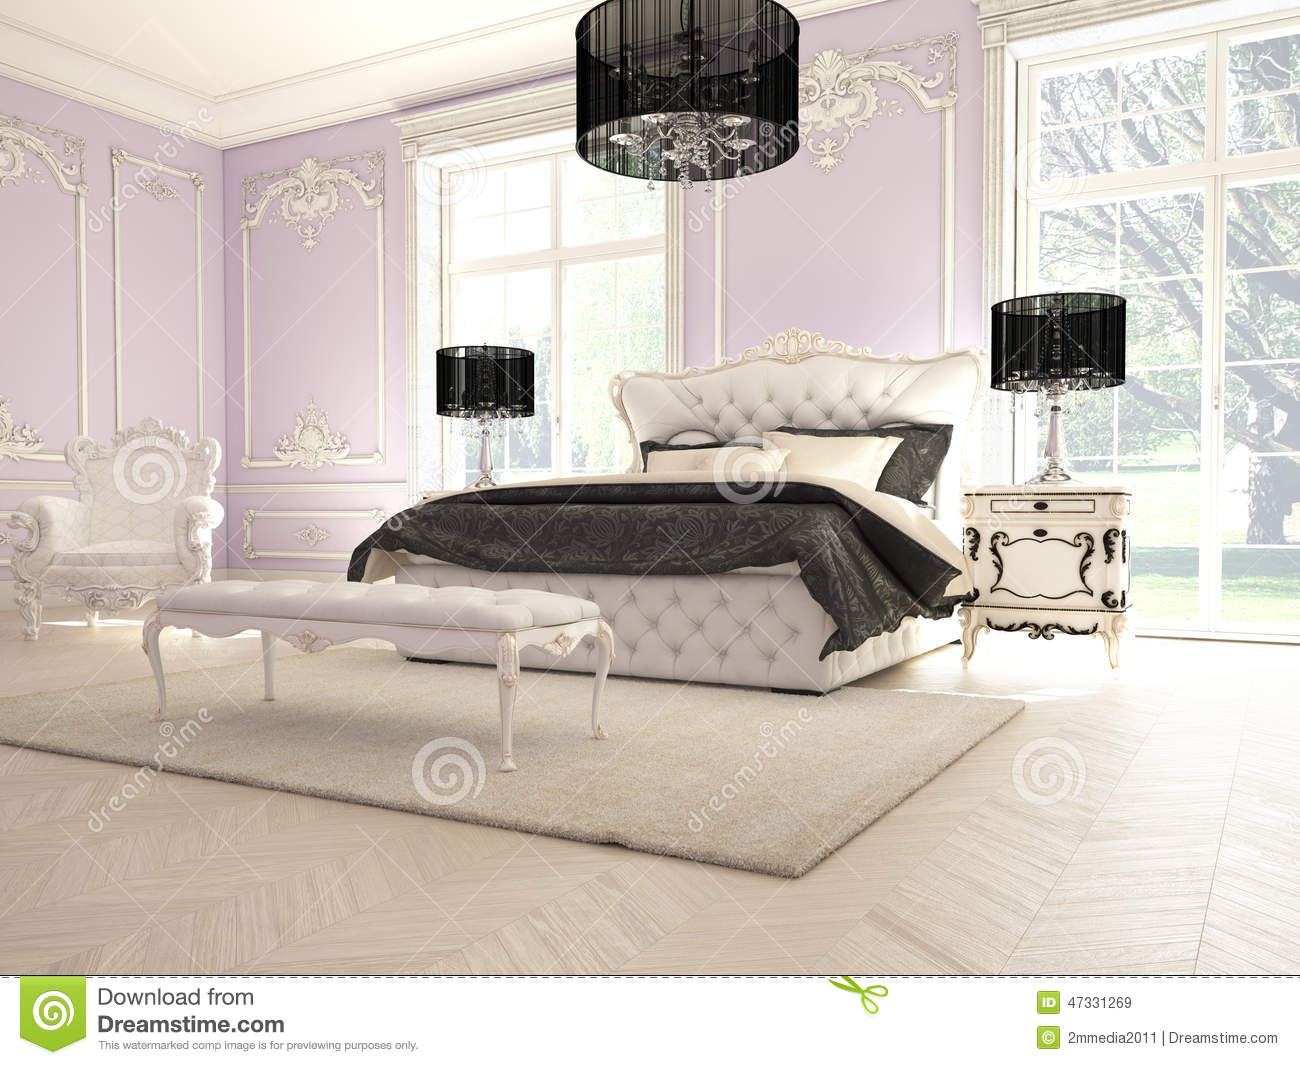 maison de luxe interieur chambre moderne. Black Bedroom Furniture Sets. Home Design Ideas